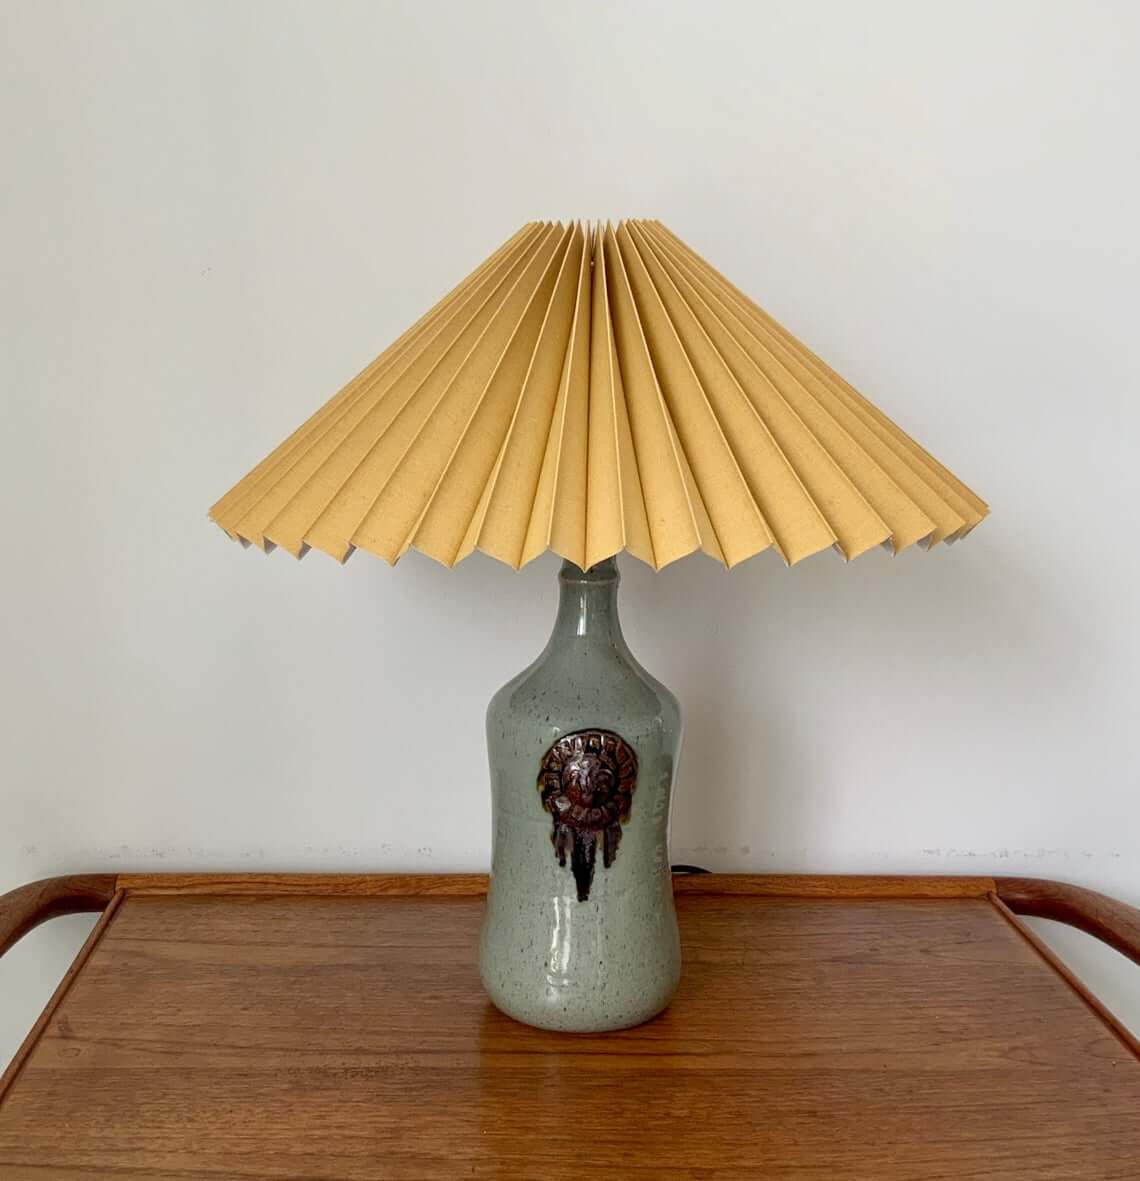 Pleated Lamp Shade with Pottery Lamp